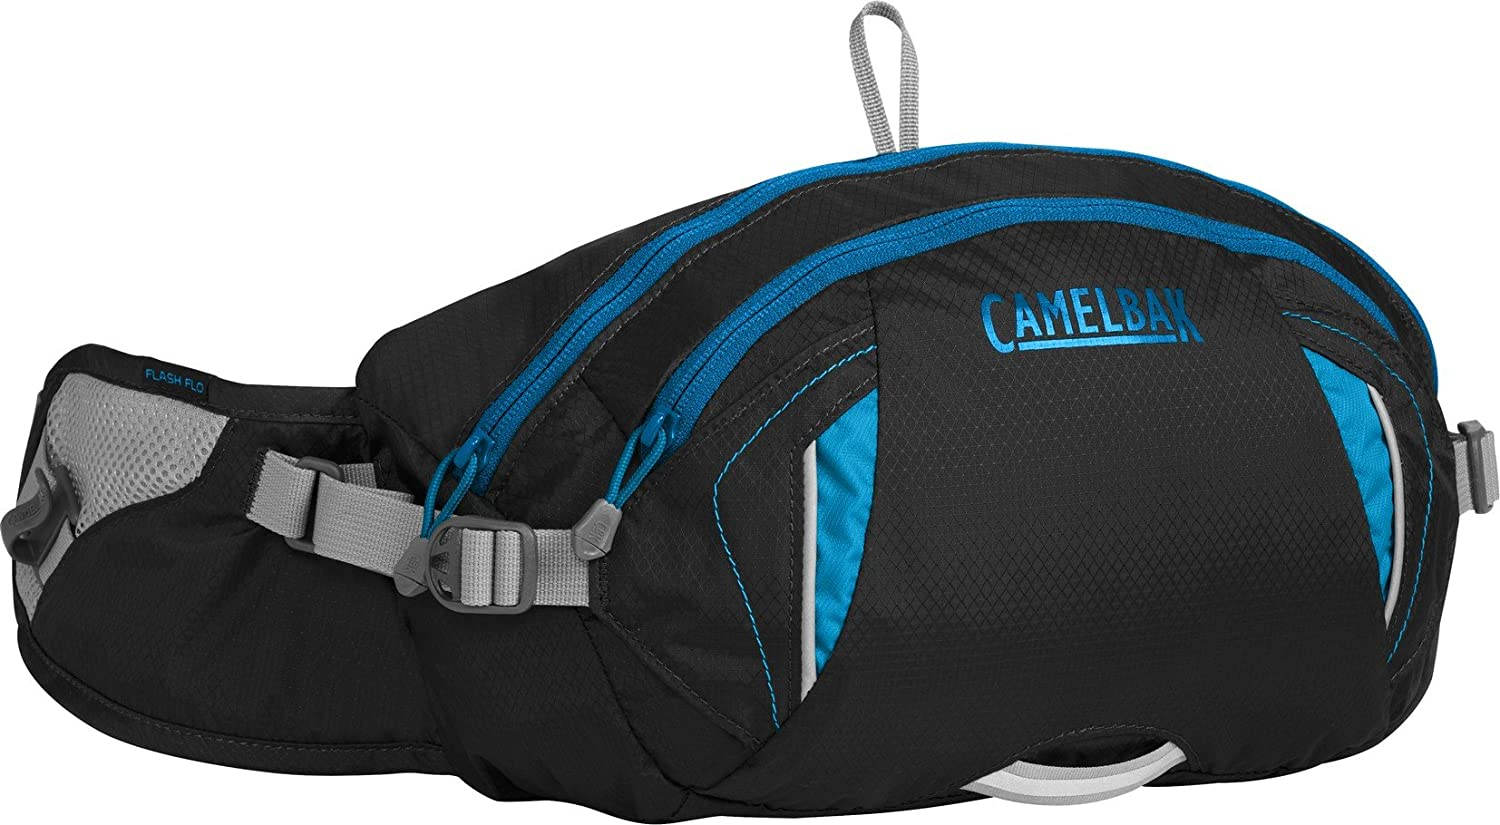 low price sale the sale of shoes outlet online Buy CamelBak FlashFlo LR Crux Lumbar Reservoir Hydration Waist ...